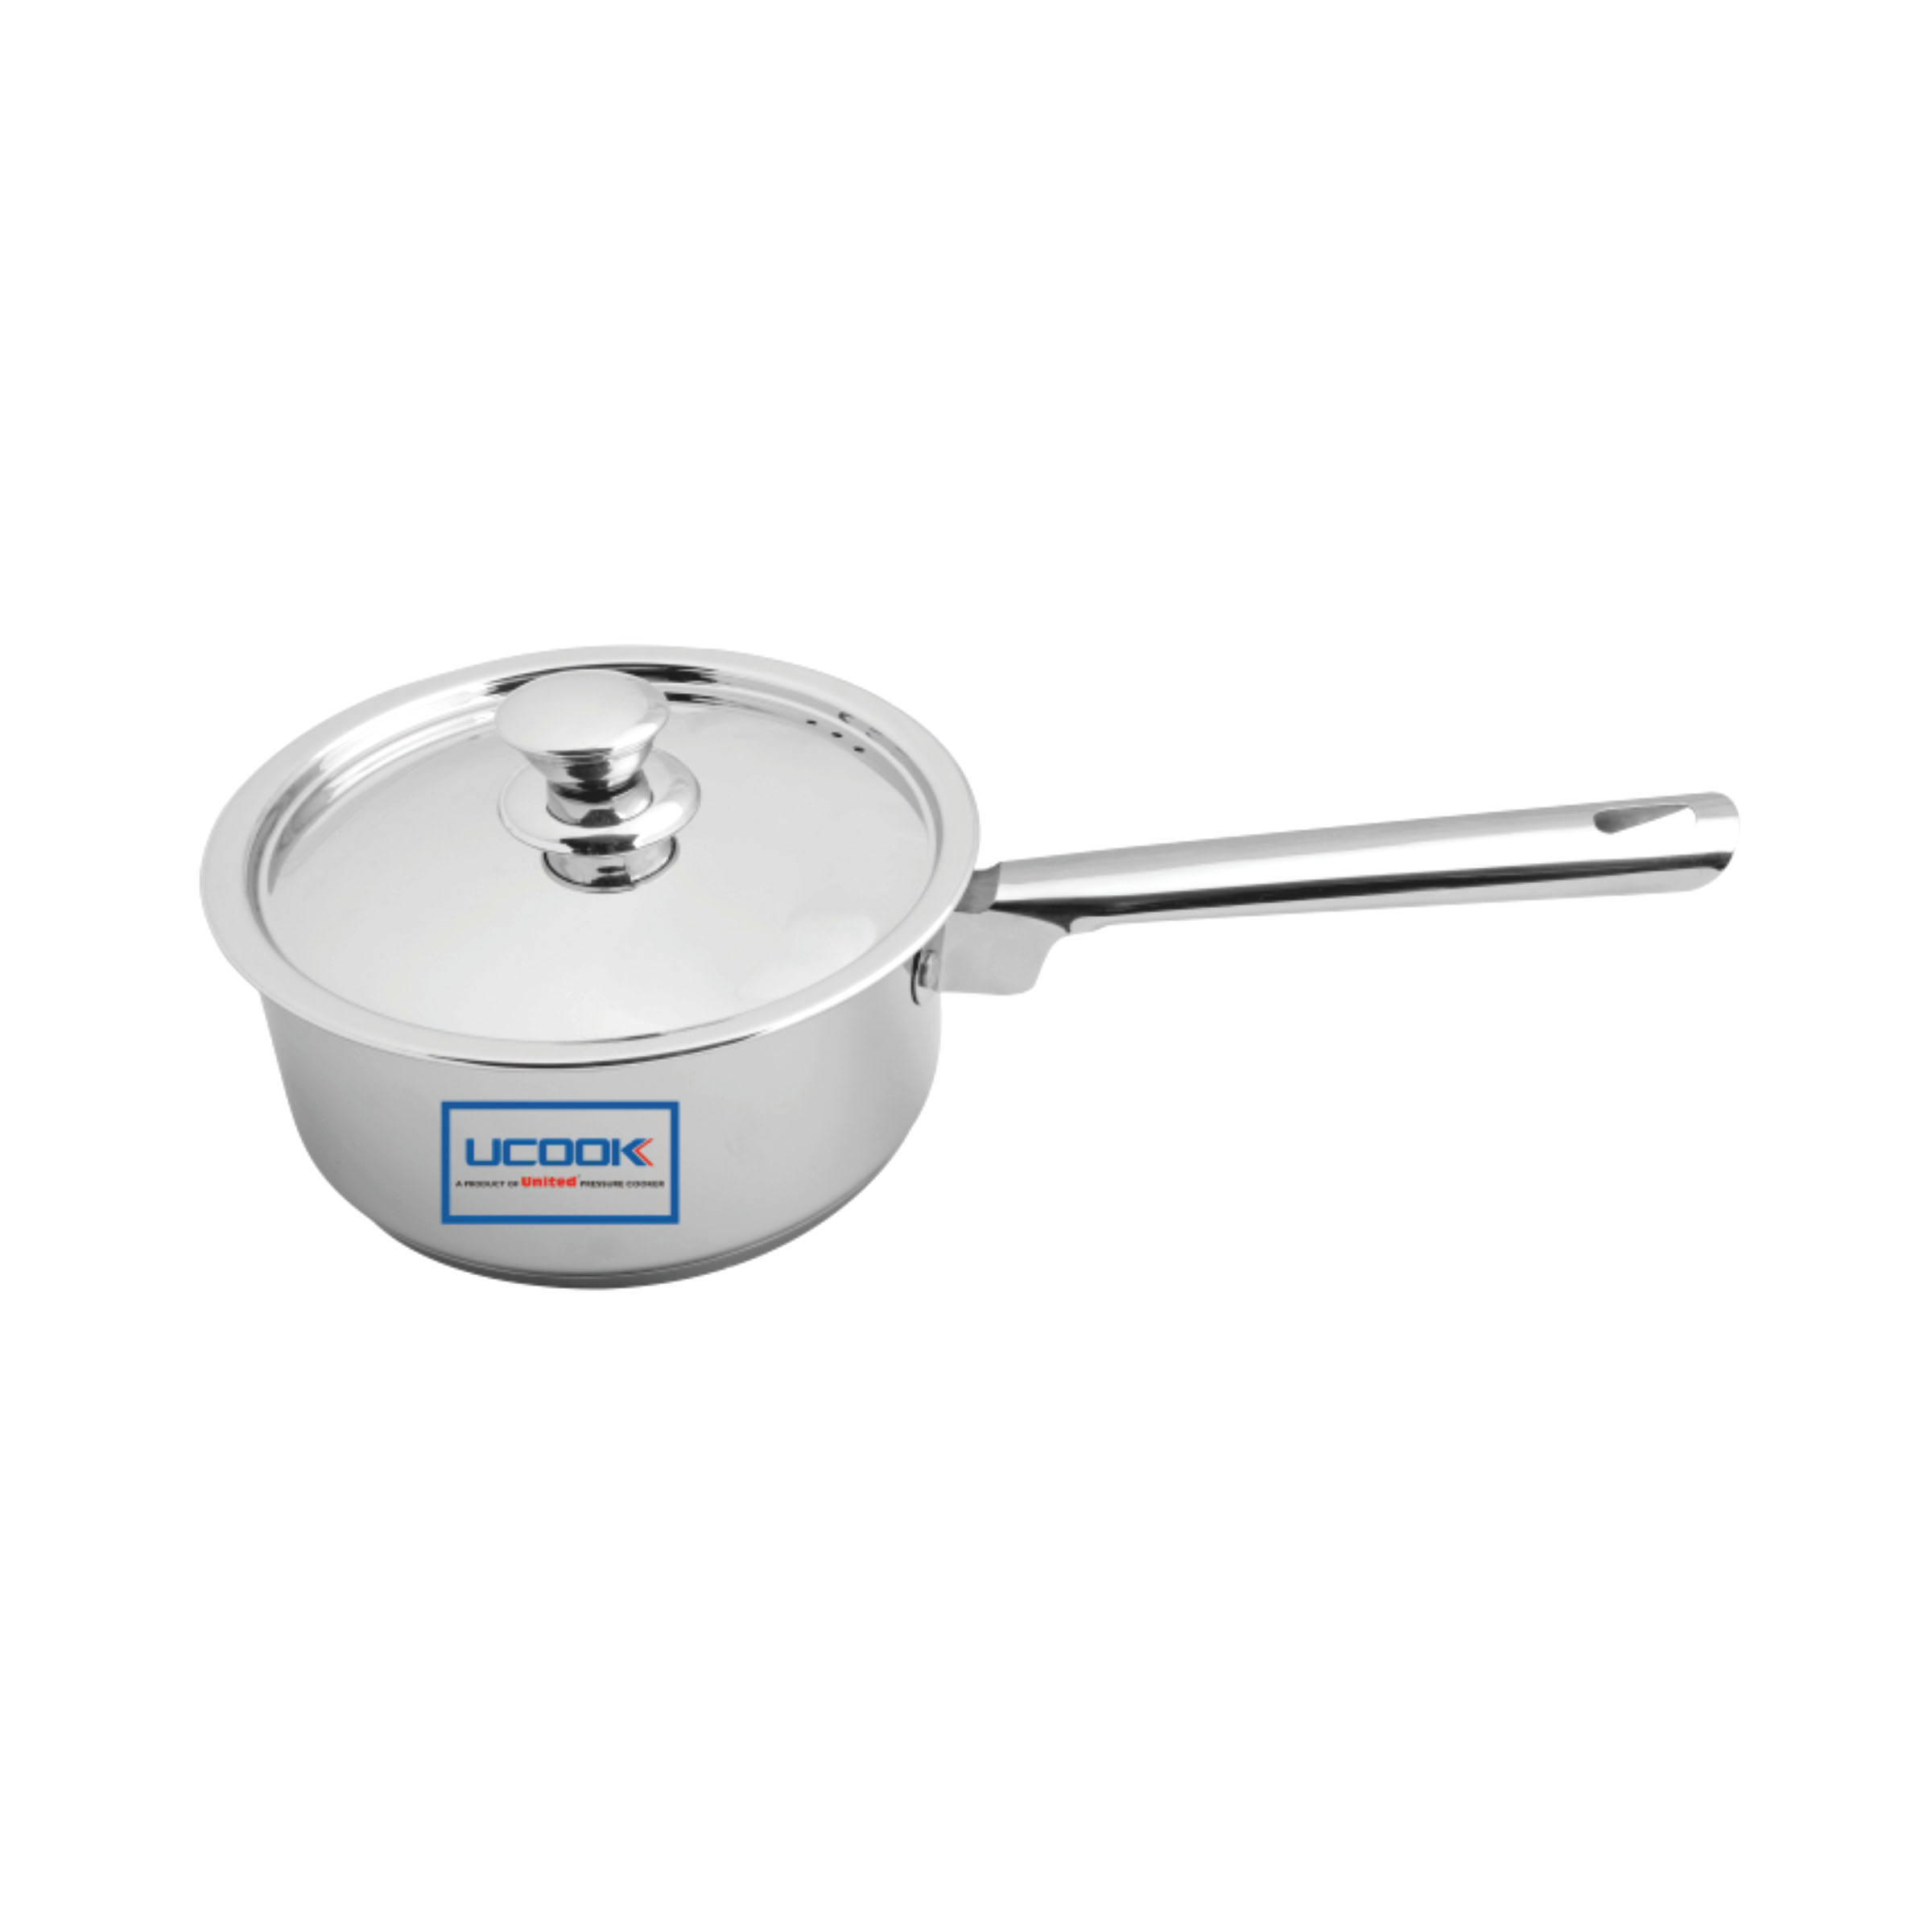 UCOOK LIFETIME SAUCE PAN 160 MM 1.6Ltr